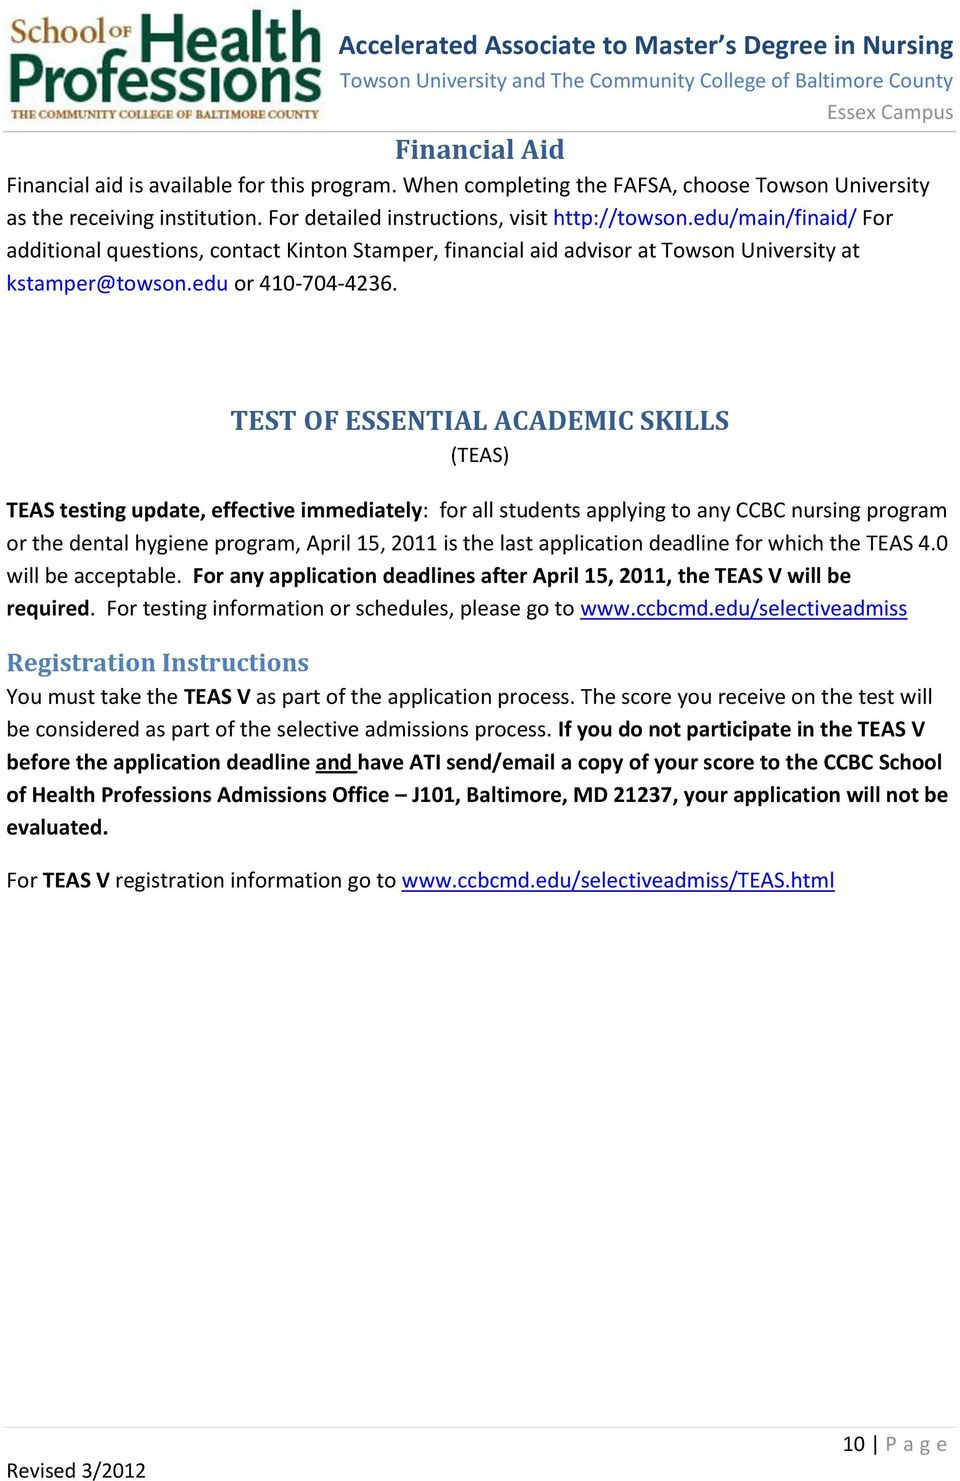 TEST OF ESSENTIAL ACADEMIC SKILLS (TEAS) TEAS testing update, effective immediately: for all students applying to any CCBC nursing program or the dental hygiene program, April 15, 2011 is the last